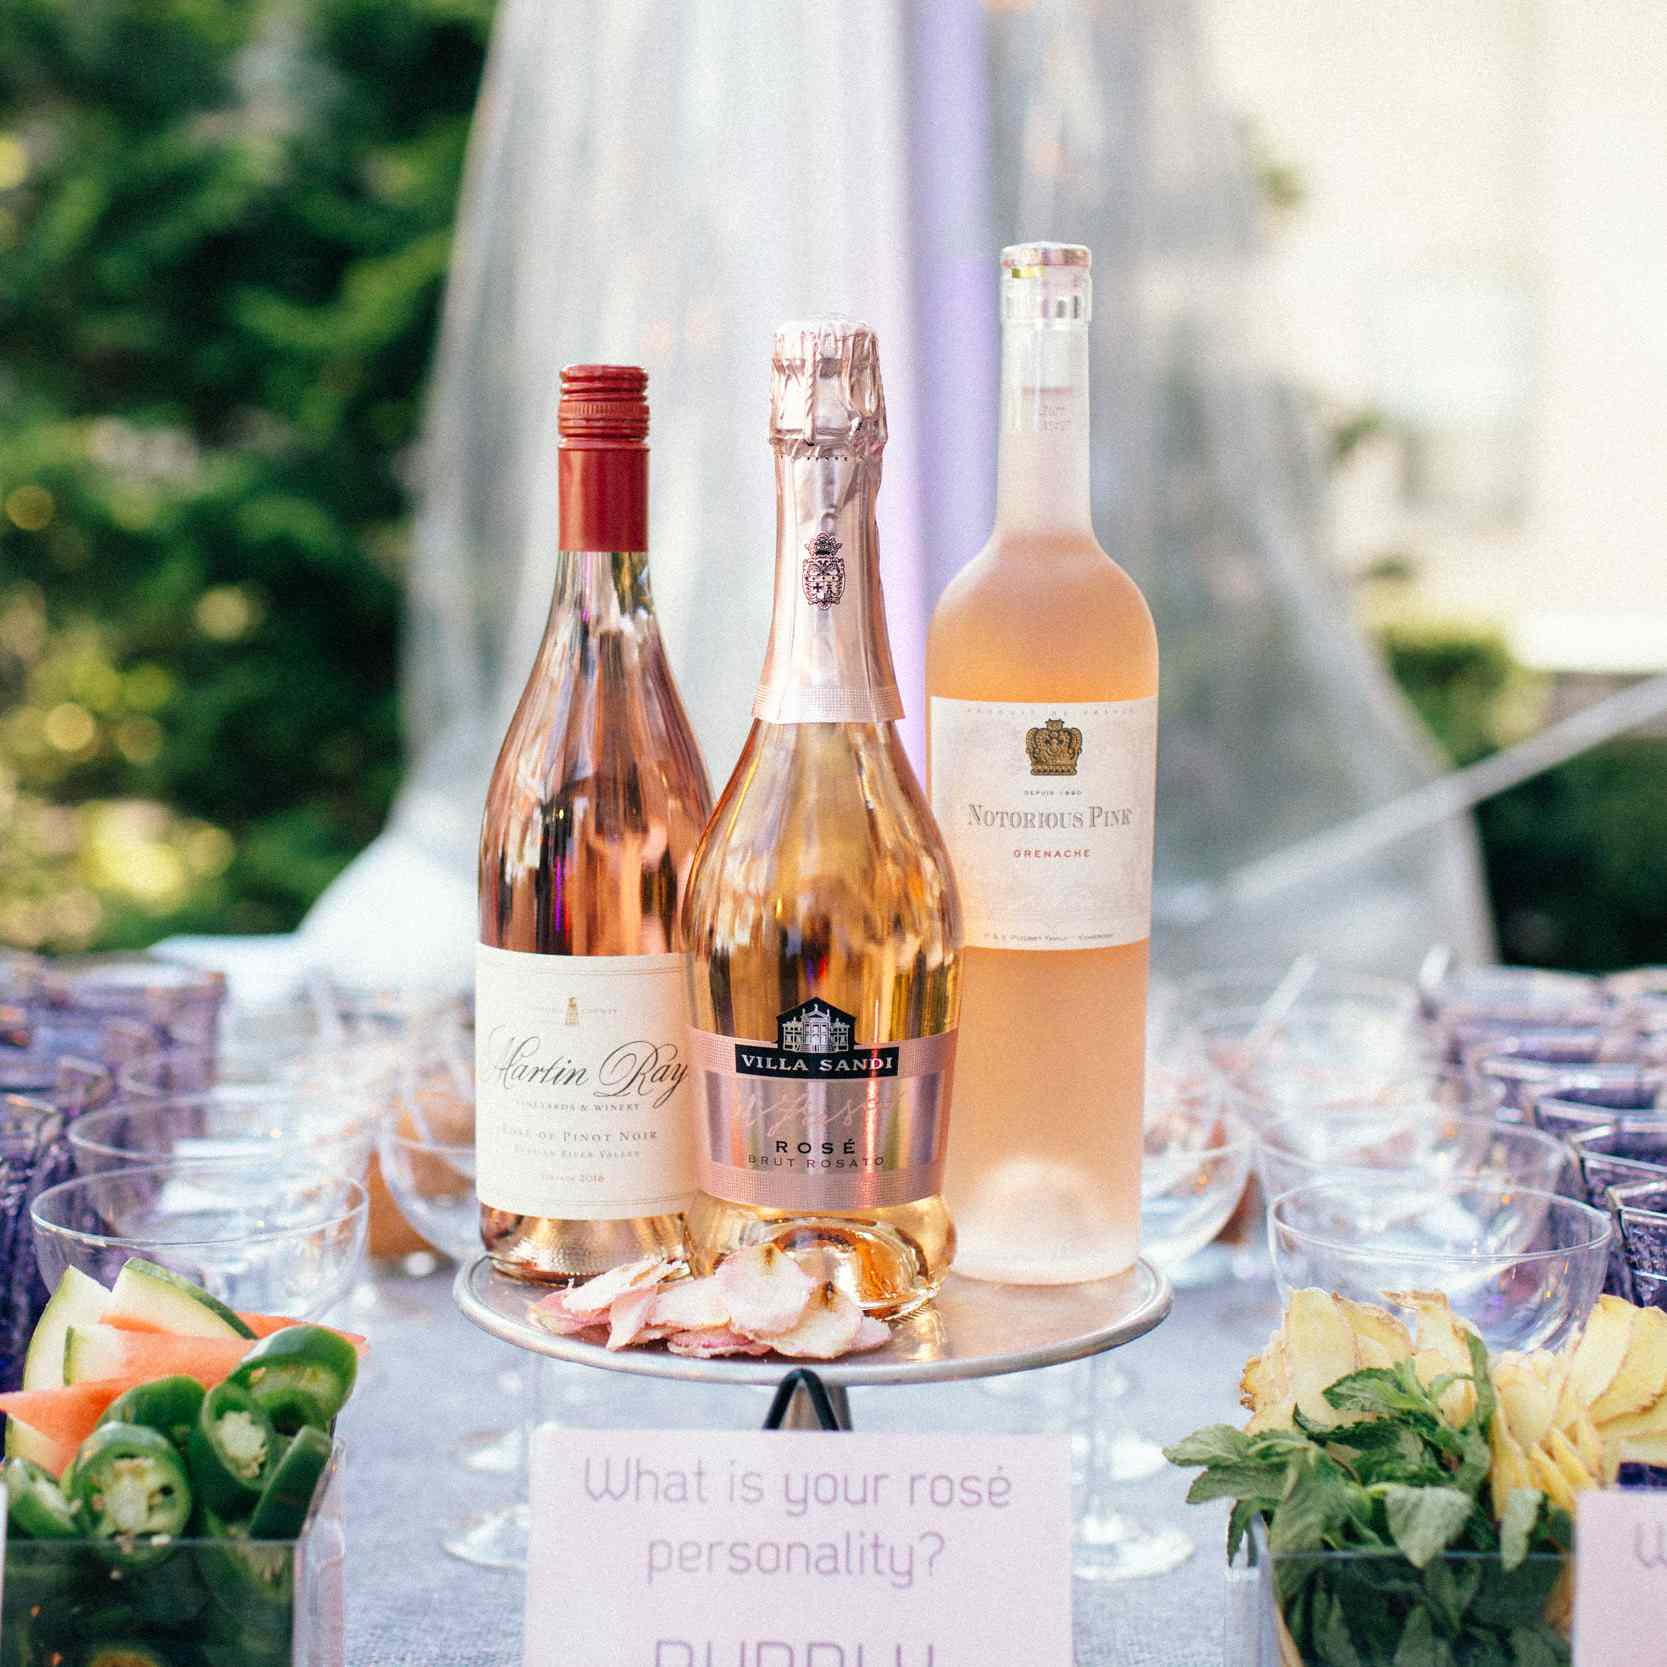 rosé bottles on display on a table